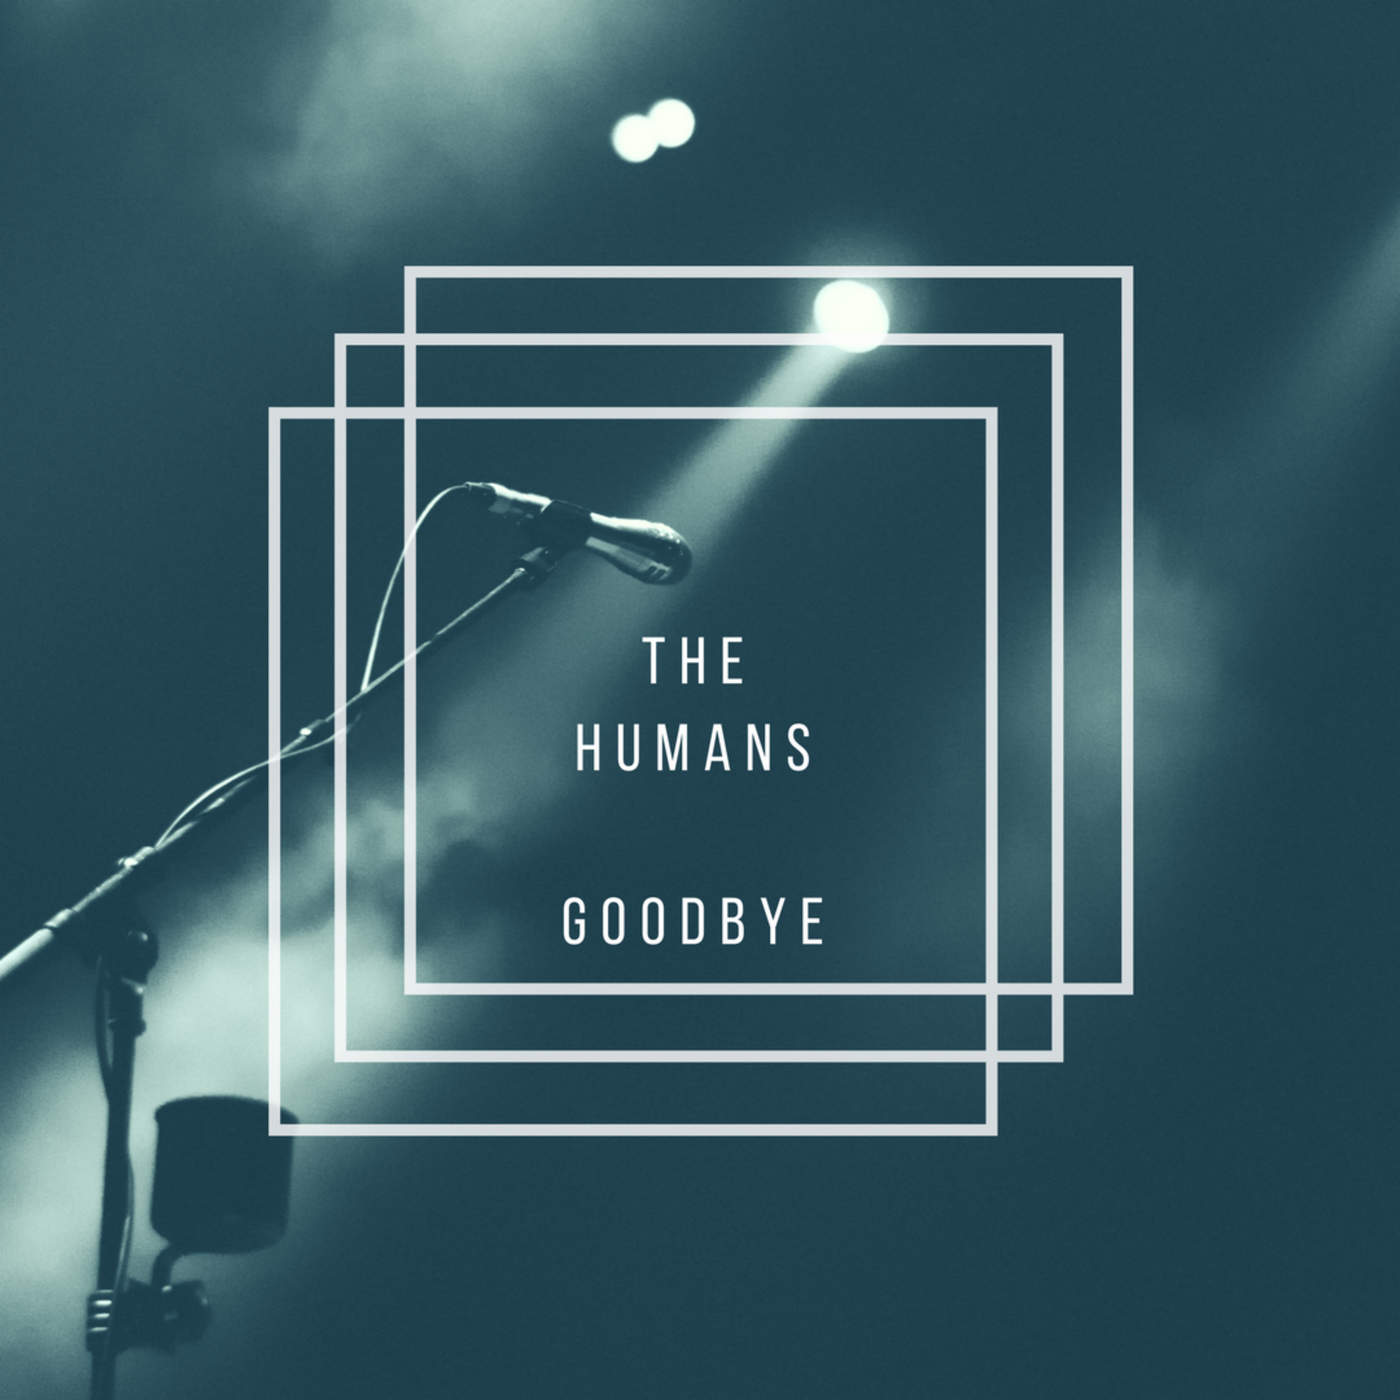 [10's] The Humans - Goodbye (2018) The%20Humans%20-%20Goodbye